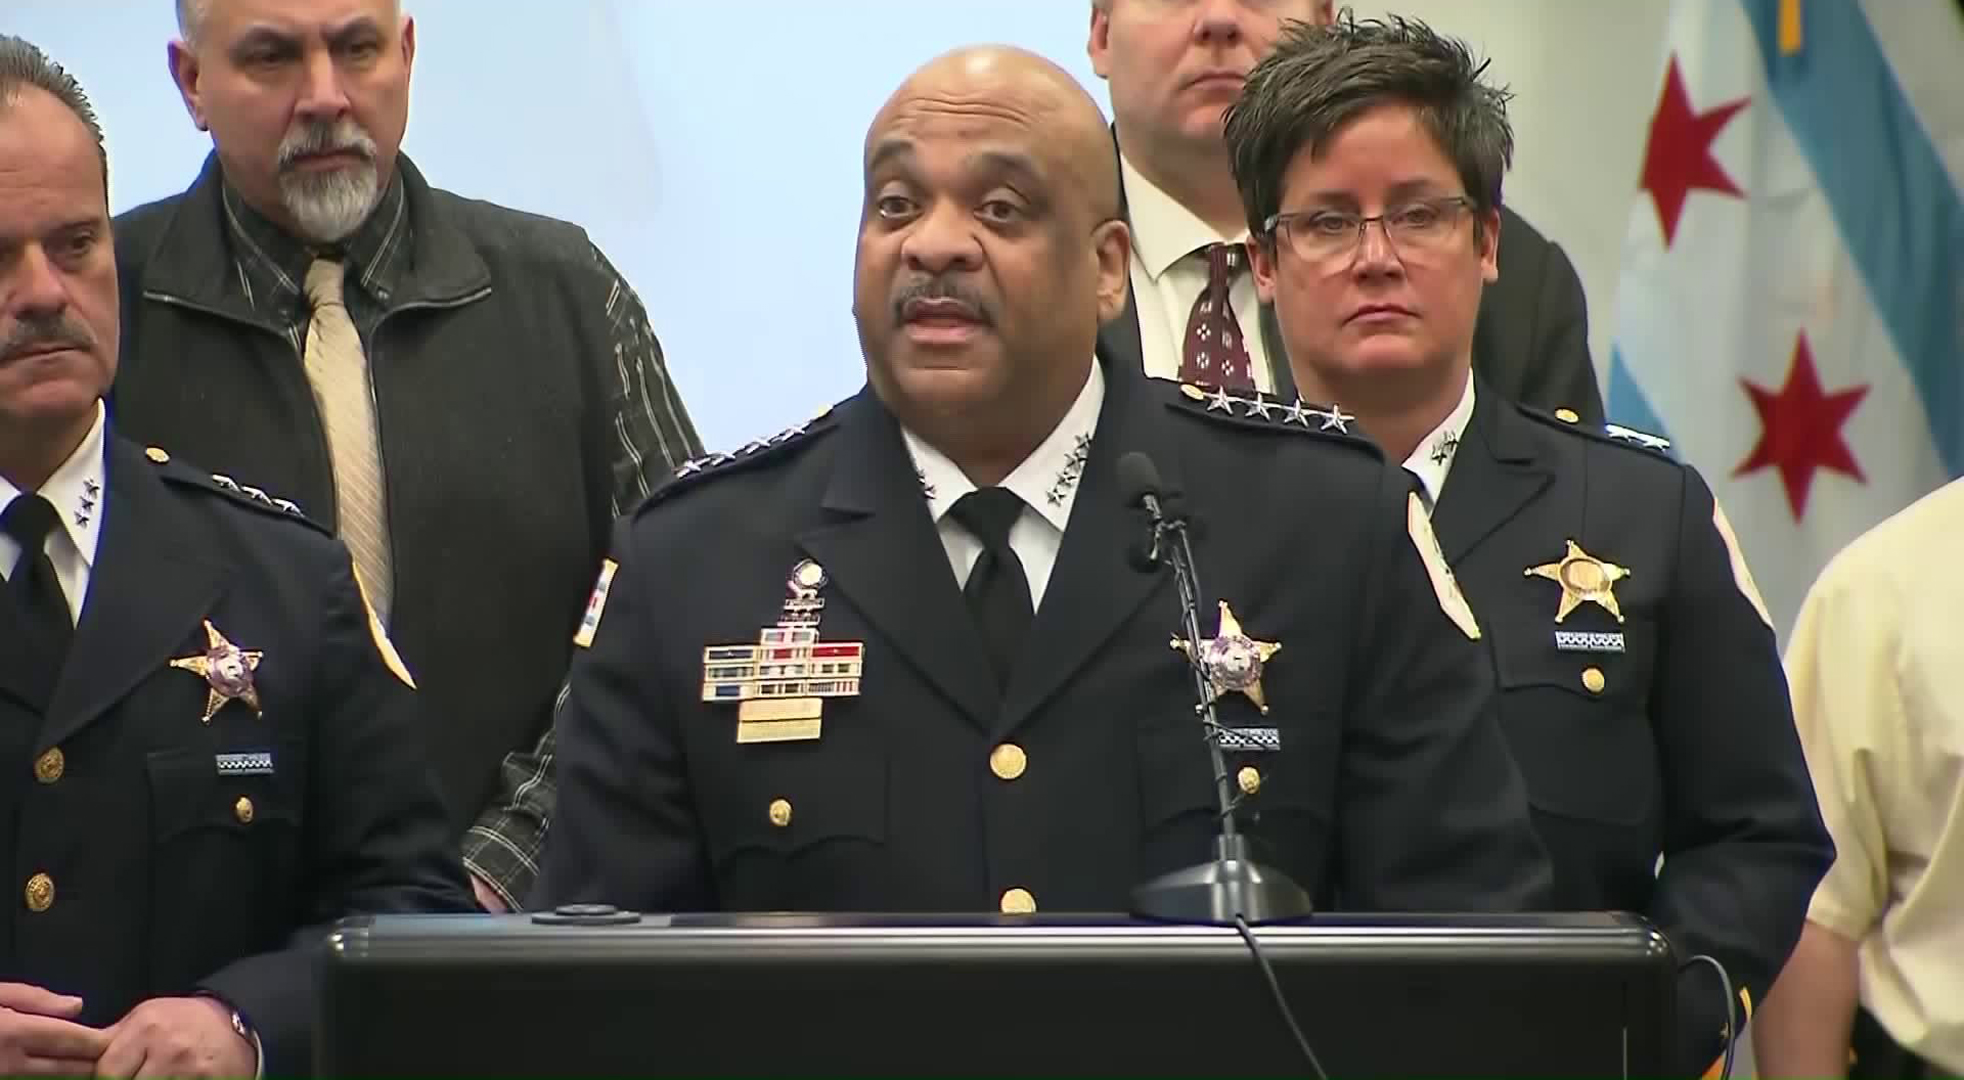 Chicago Police Superintendent Eddie Johnson speaks during a news conference on Feb. 21, 2019. (Credit: CNN)